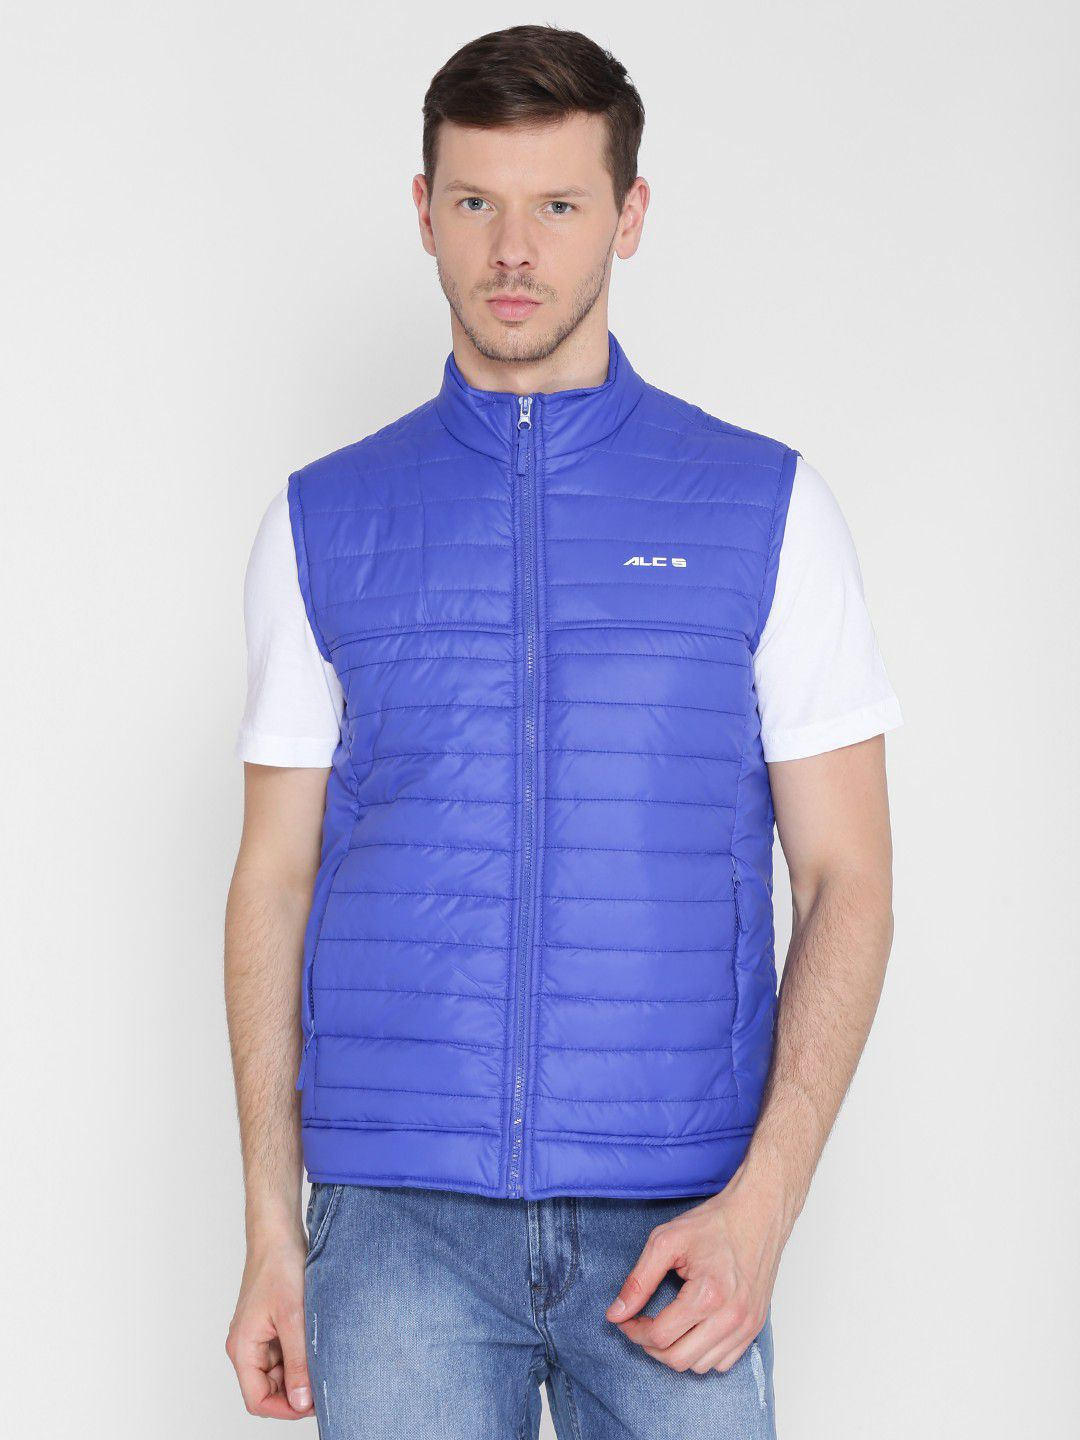 Alcis Mens Solid Royal Blue Quilted Jacket